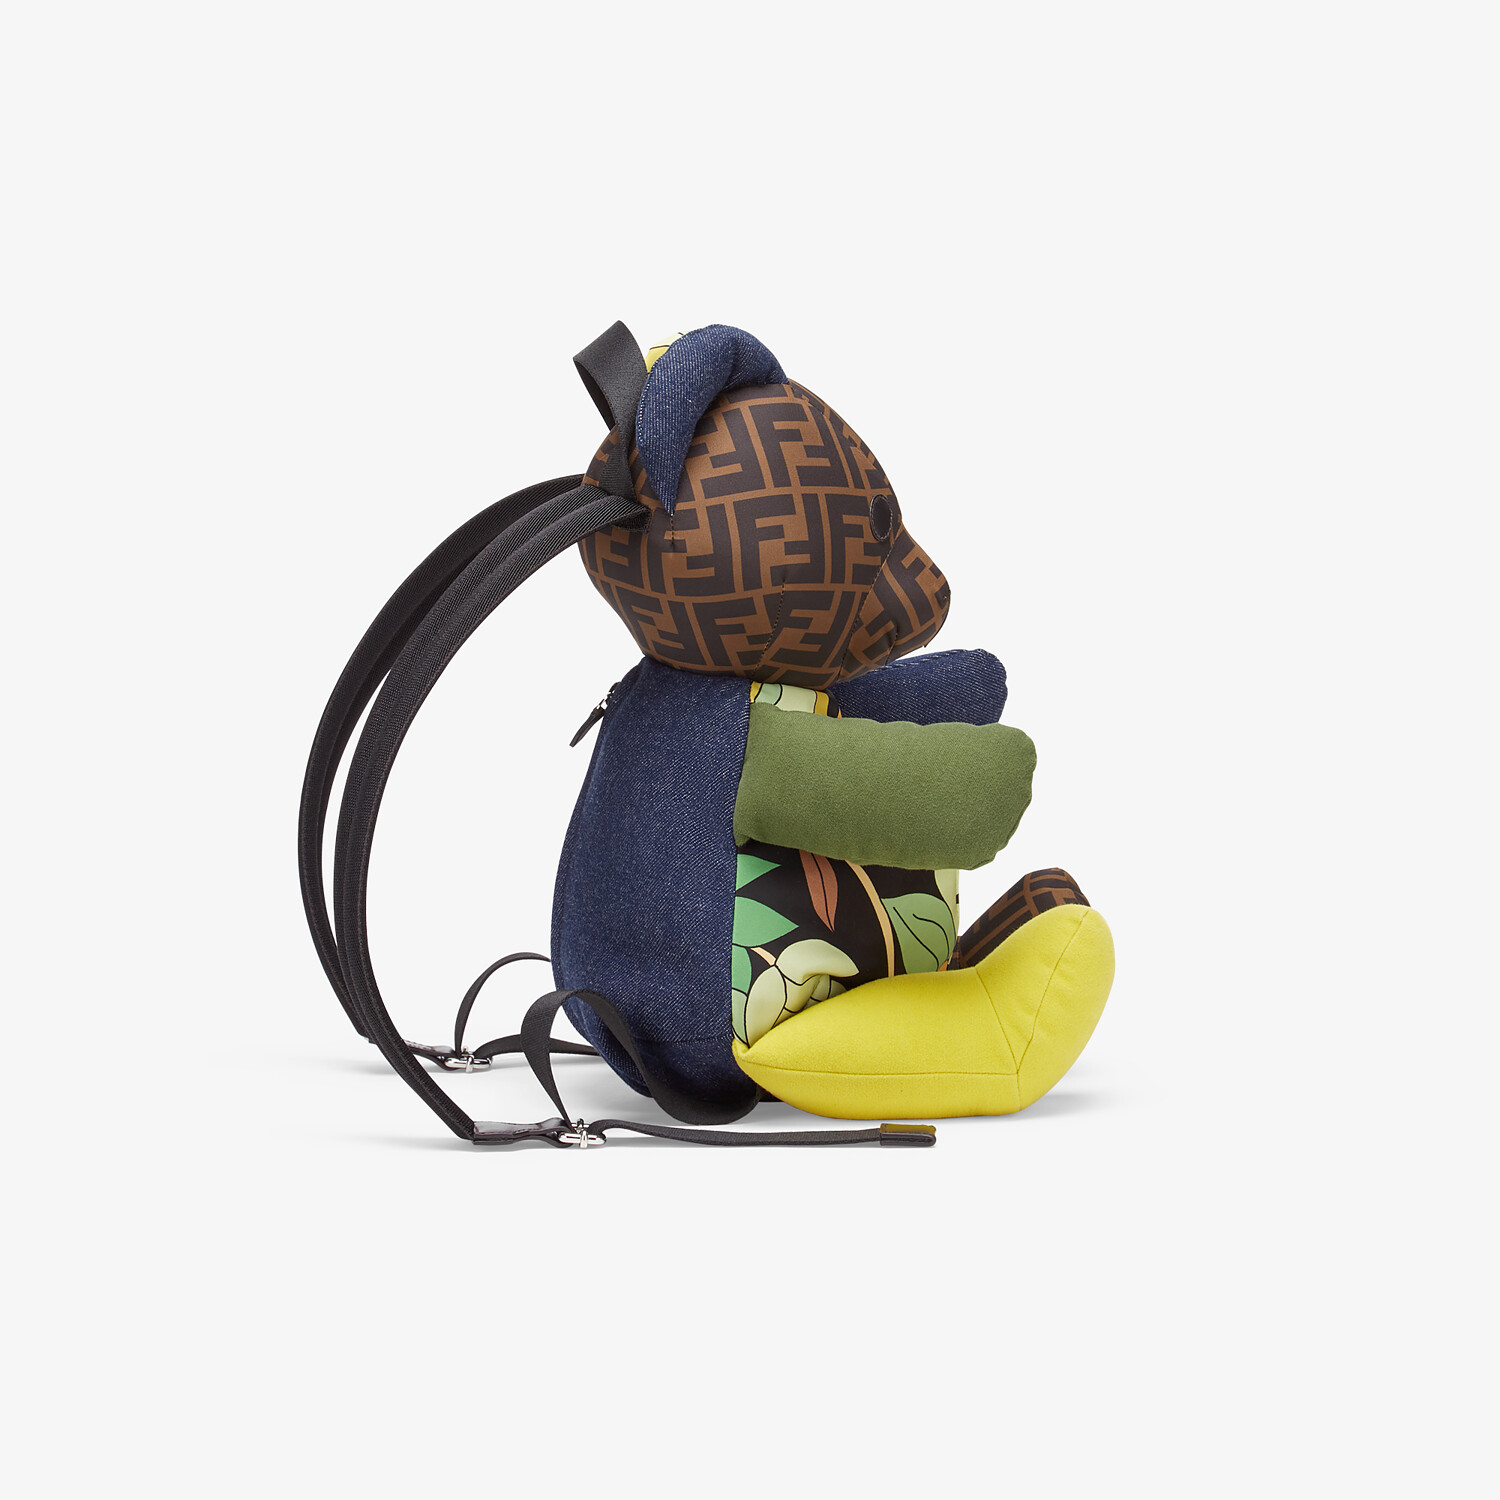 FENDI TEDDY BEAR BACKPACK - Teddy bear backpack in multicolor patchwork fabric with FF logo - view 2 detail